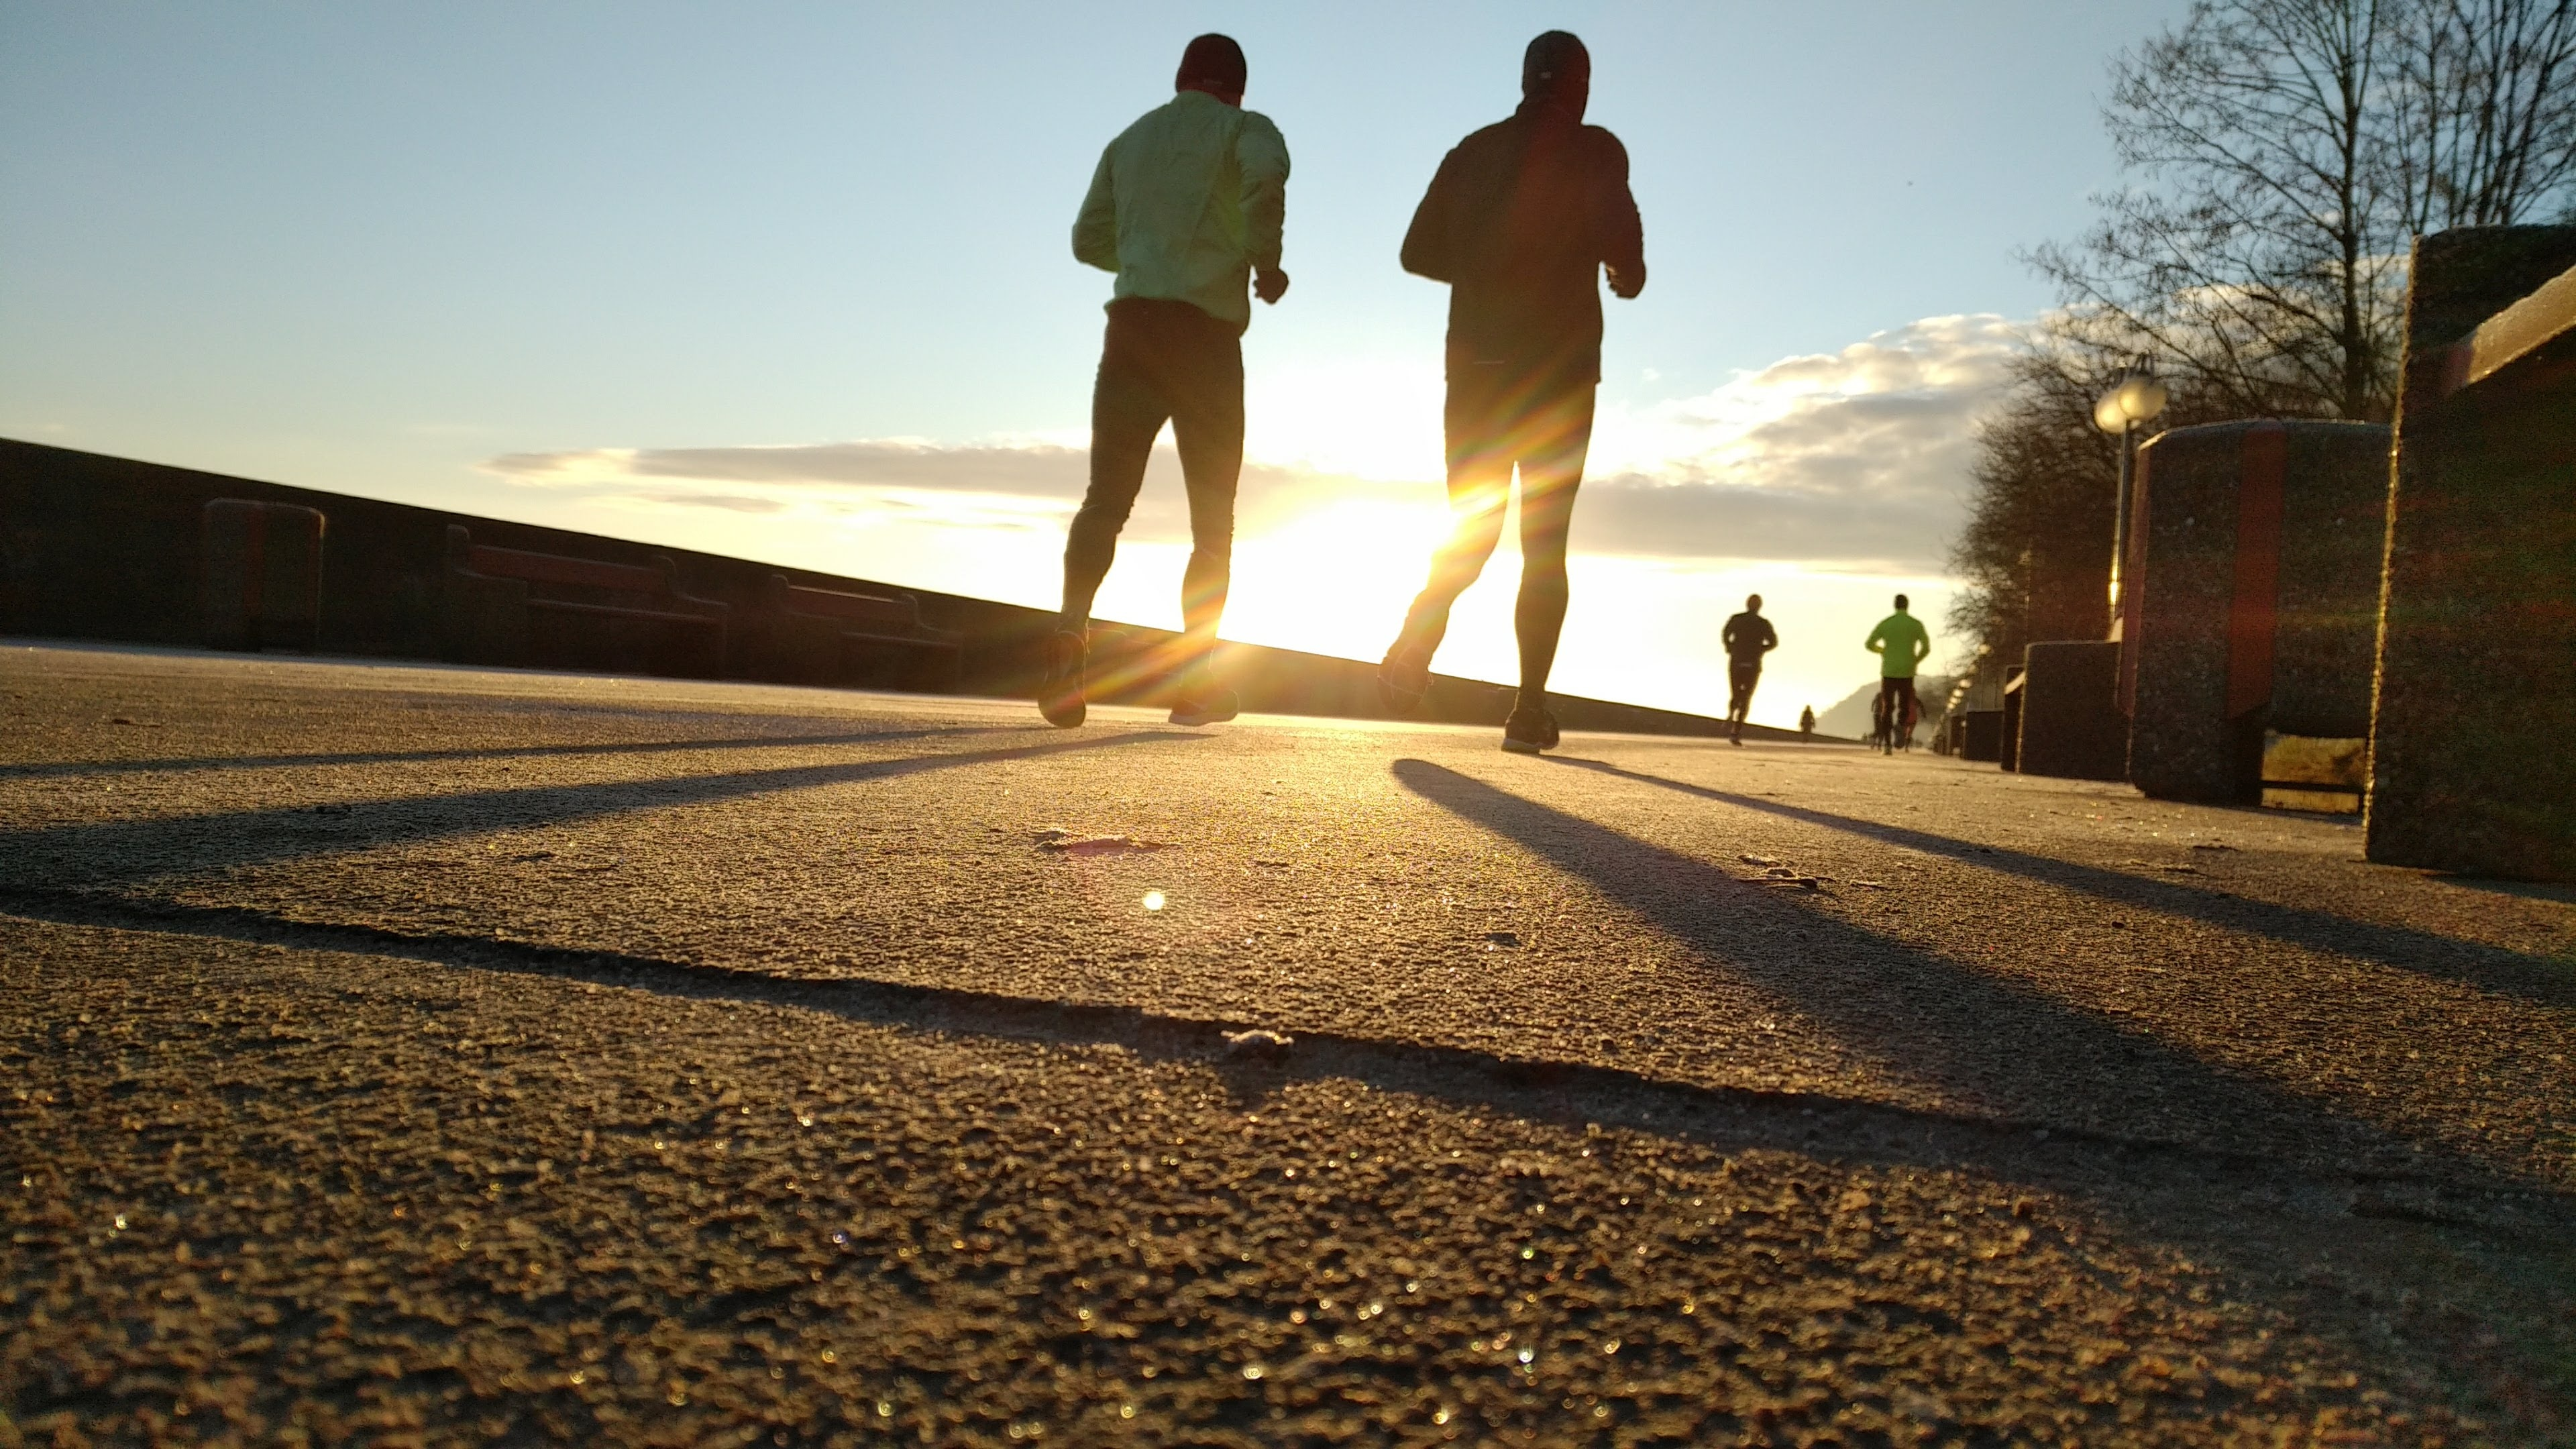 Runners Running at Sunset